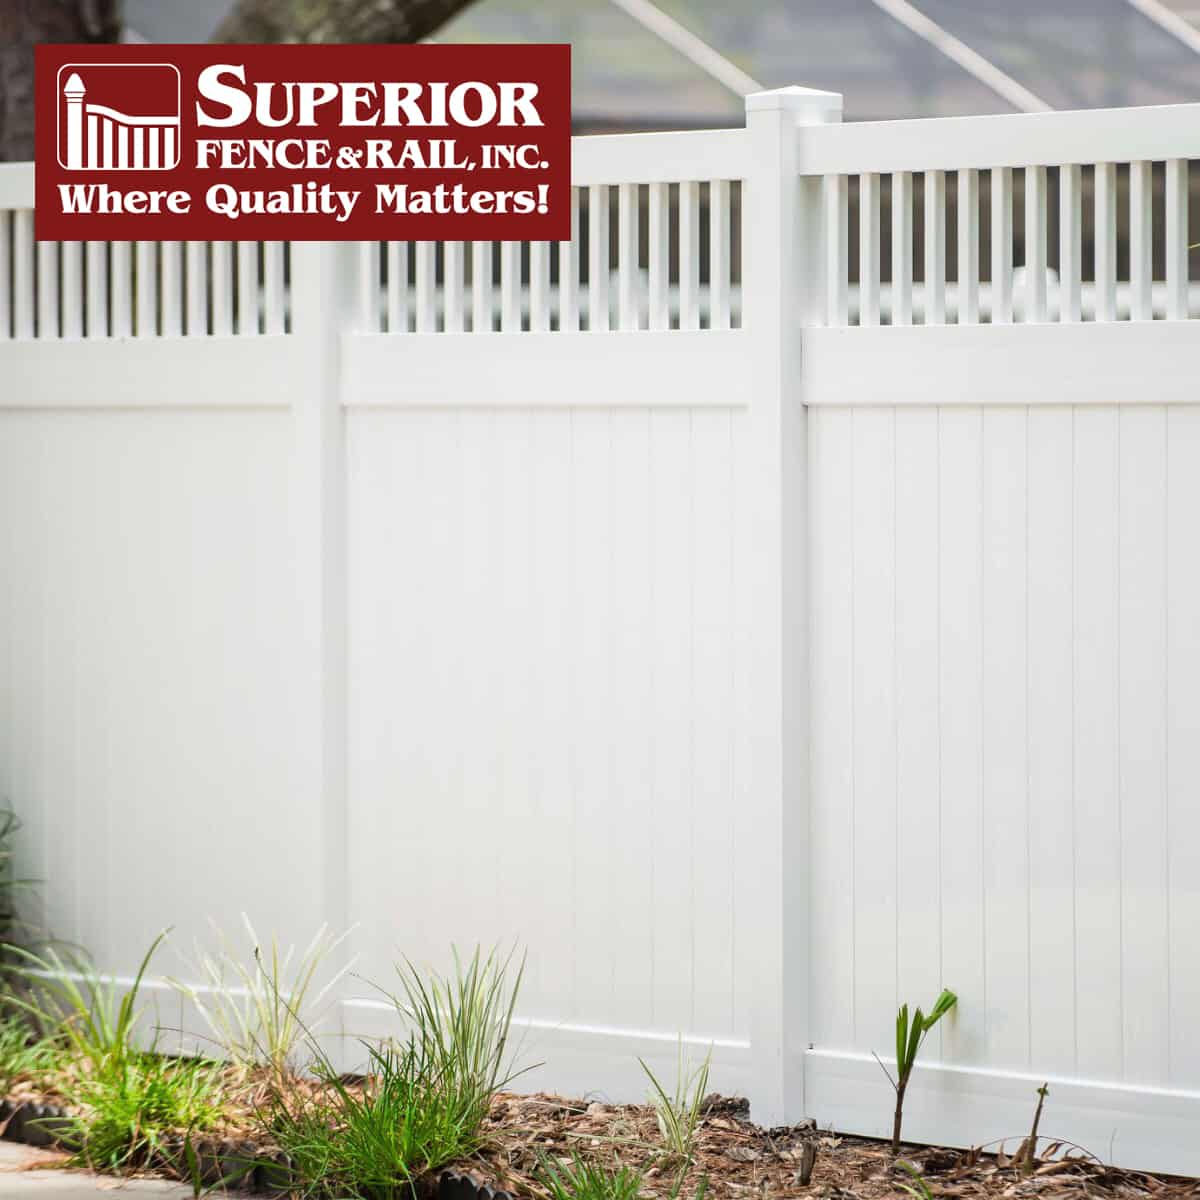 Highlands ranch fence company contractor